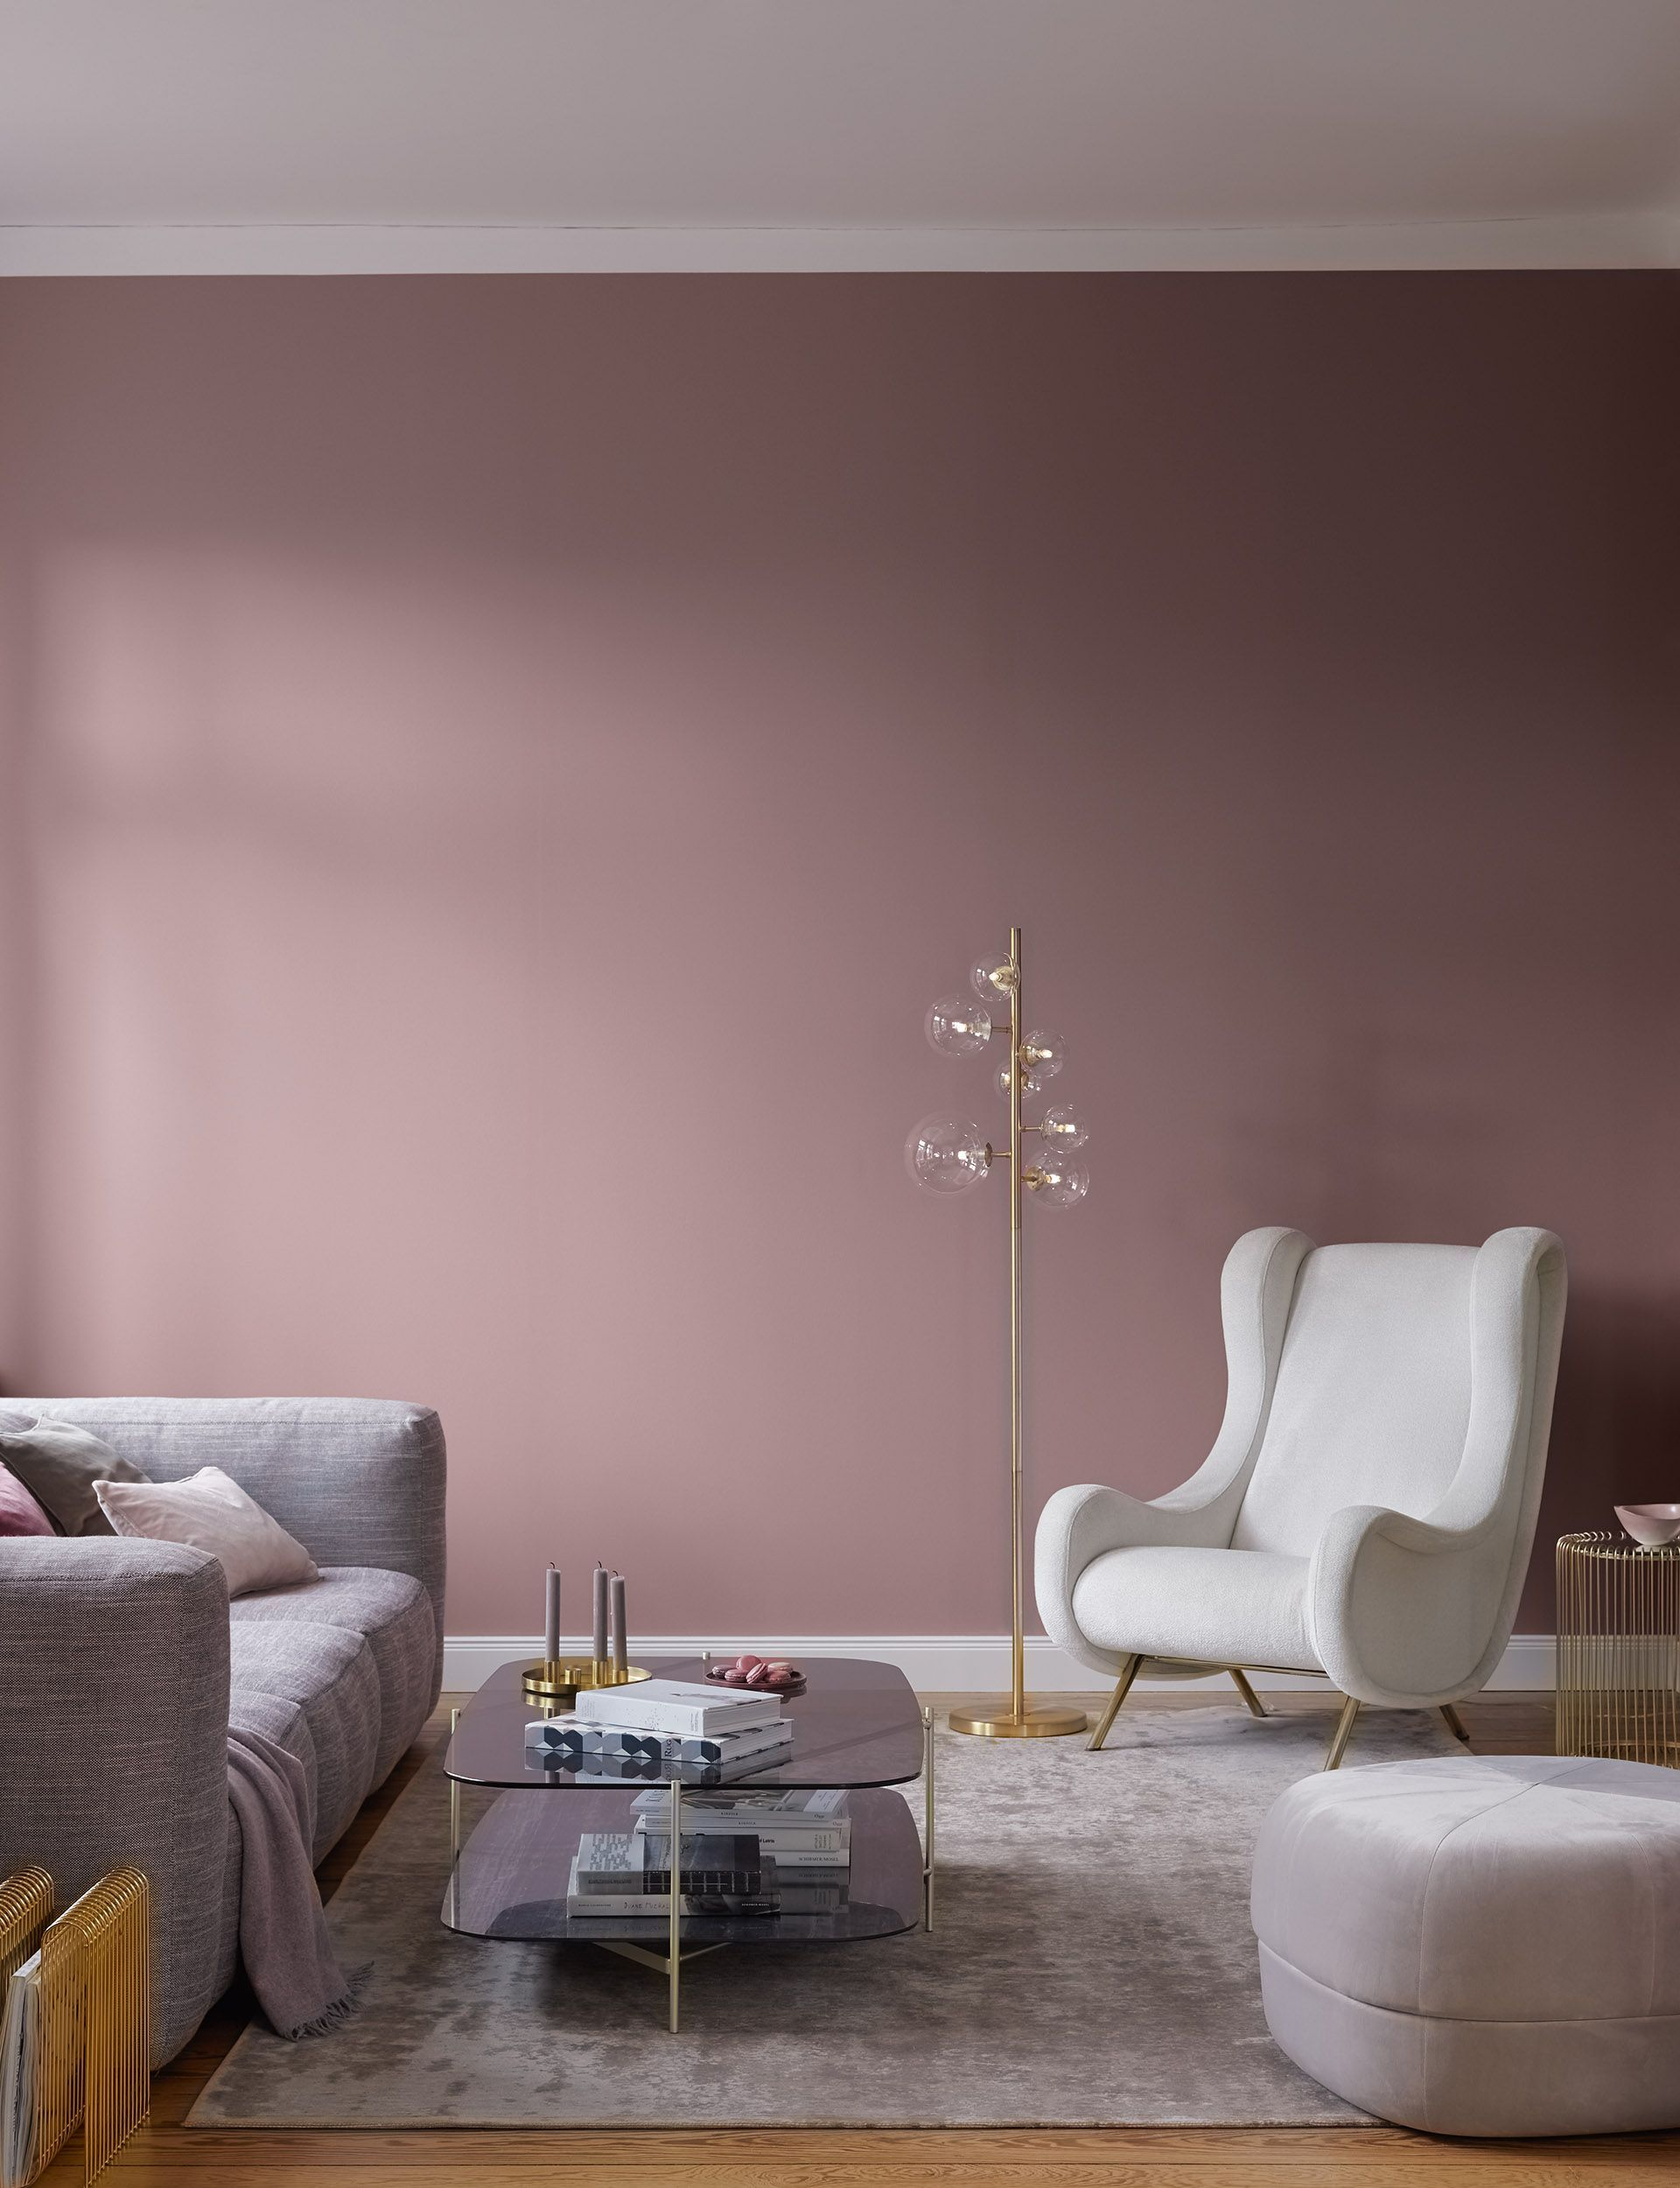 Ameublement Moderne Alpina Fines Couleurs Melodie De Grace Peinture Murale Rose Violette In 2020 Modern Furnishings Living Room Decor Apartment Room Color Schemes